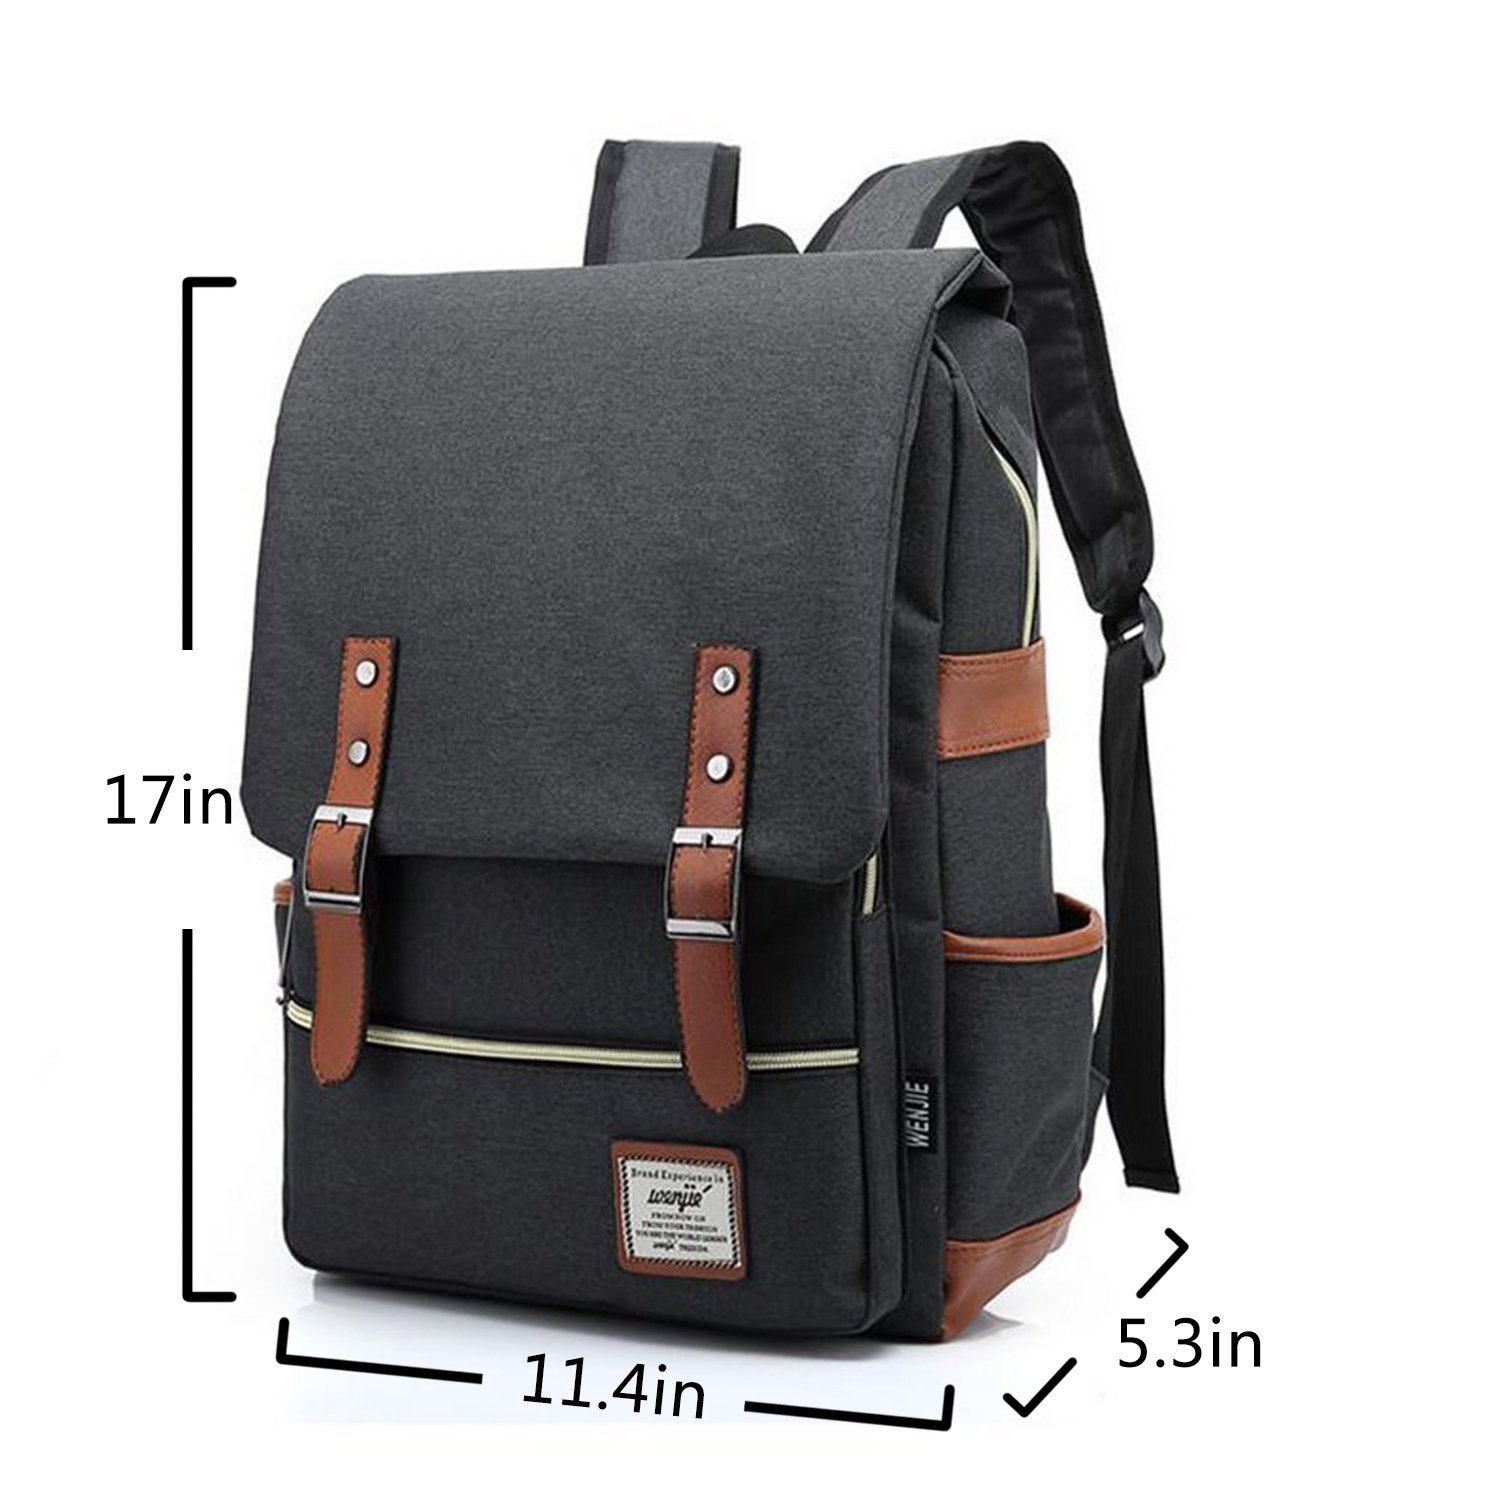 679159963 Canvas Backpack - Lightweight Laptop Backpack, Vintage Travel Backpack with  Laptop Sleeve, Campus Backpack with Side Pockets Canvas Rucksack for School  ...